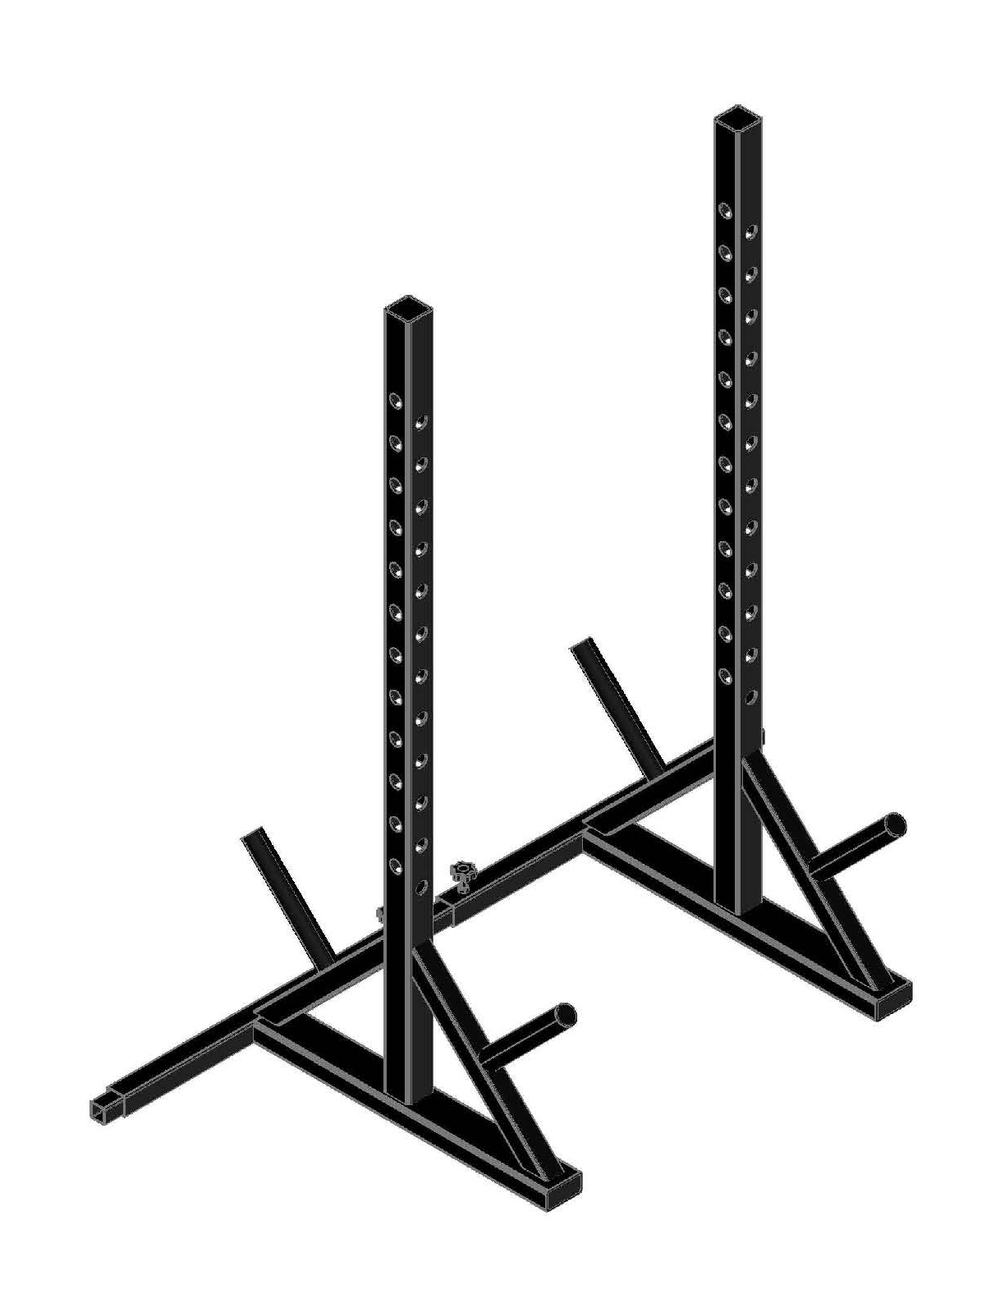 Adjustable Squat Rack Main Image